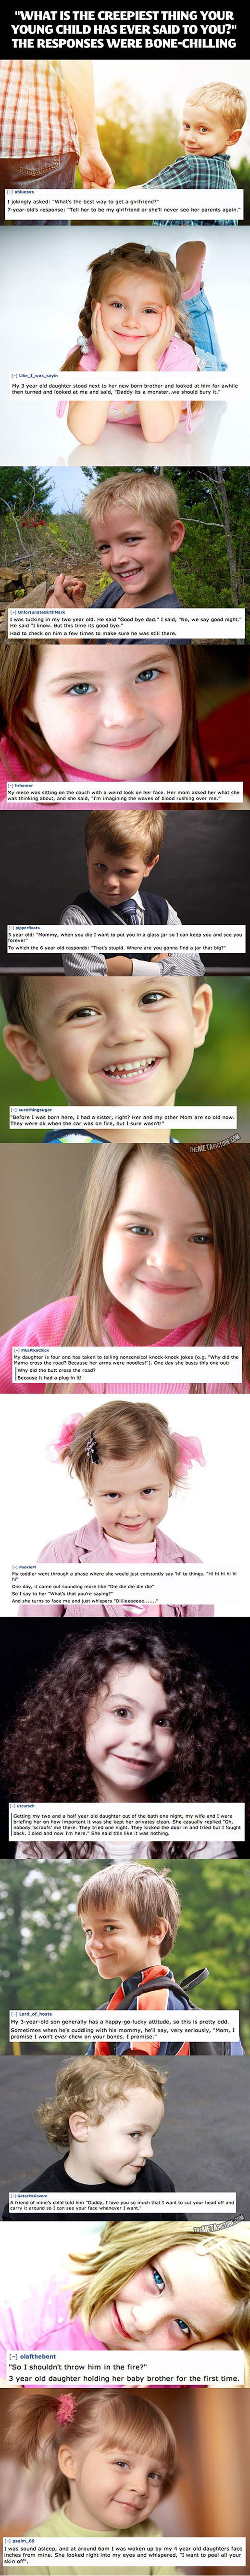 The-creepiest-things-kids-say-to-their-parents